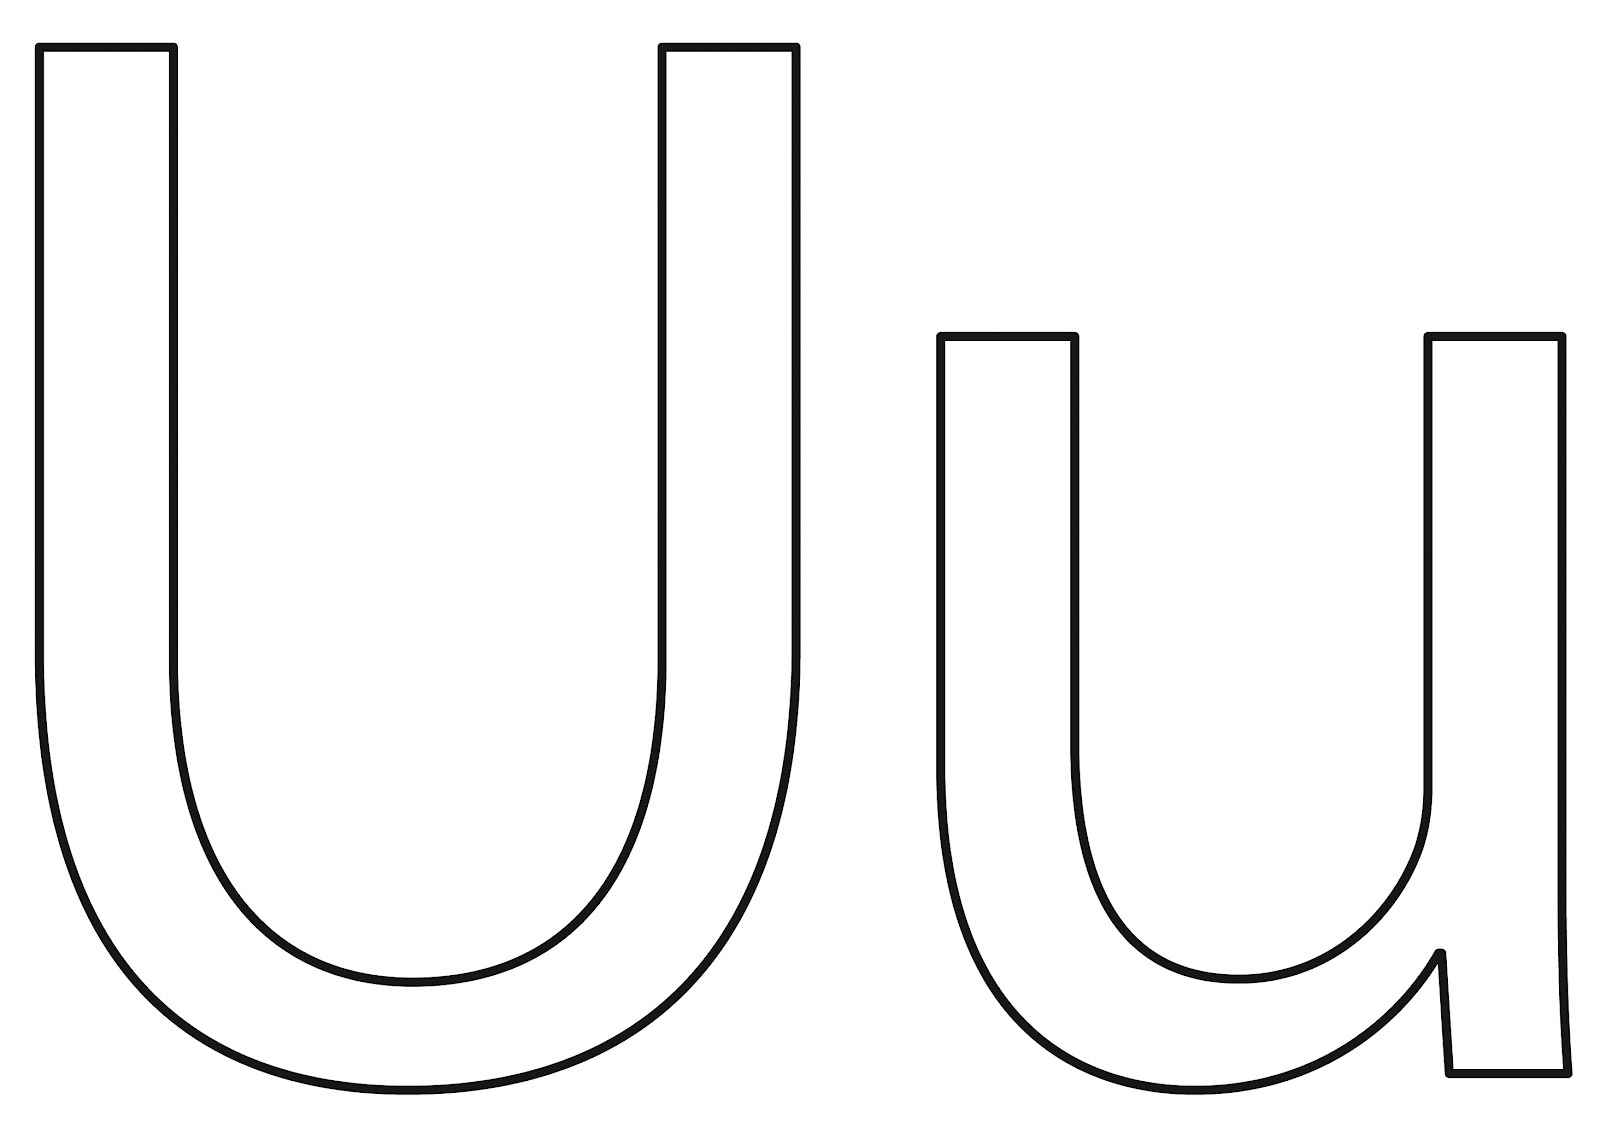 The bingham diaries the letter u for preschoolers for Letter u coloring pages